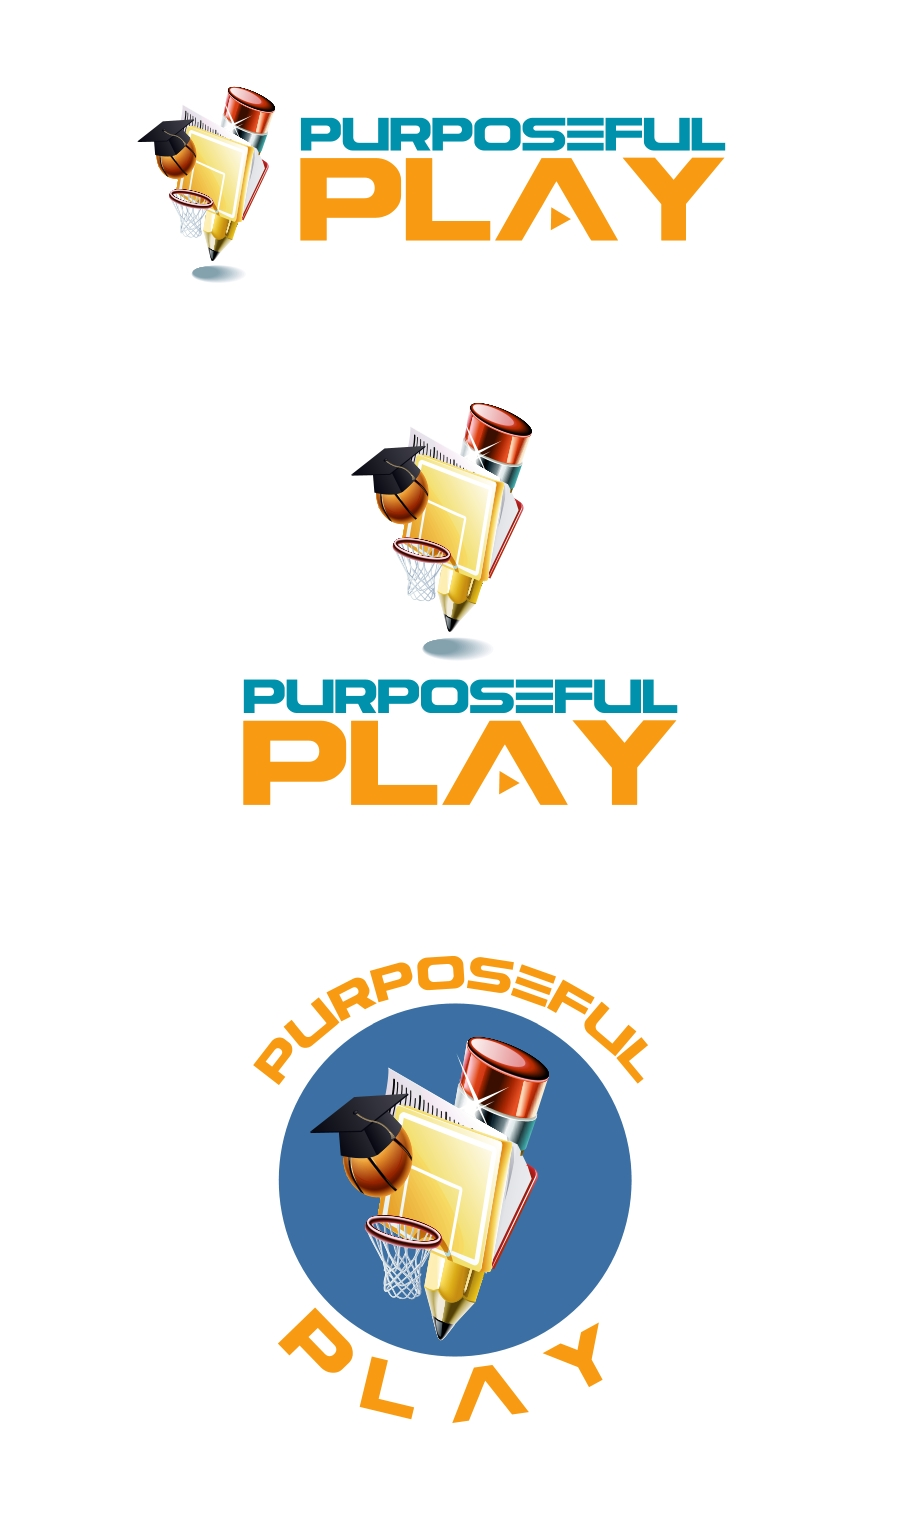 Logo Design by Private User - Entry No. 26 in the Logo Design Contest Purposeful PLAY Logo Design.